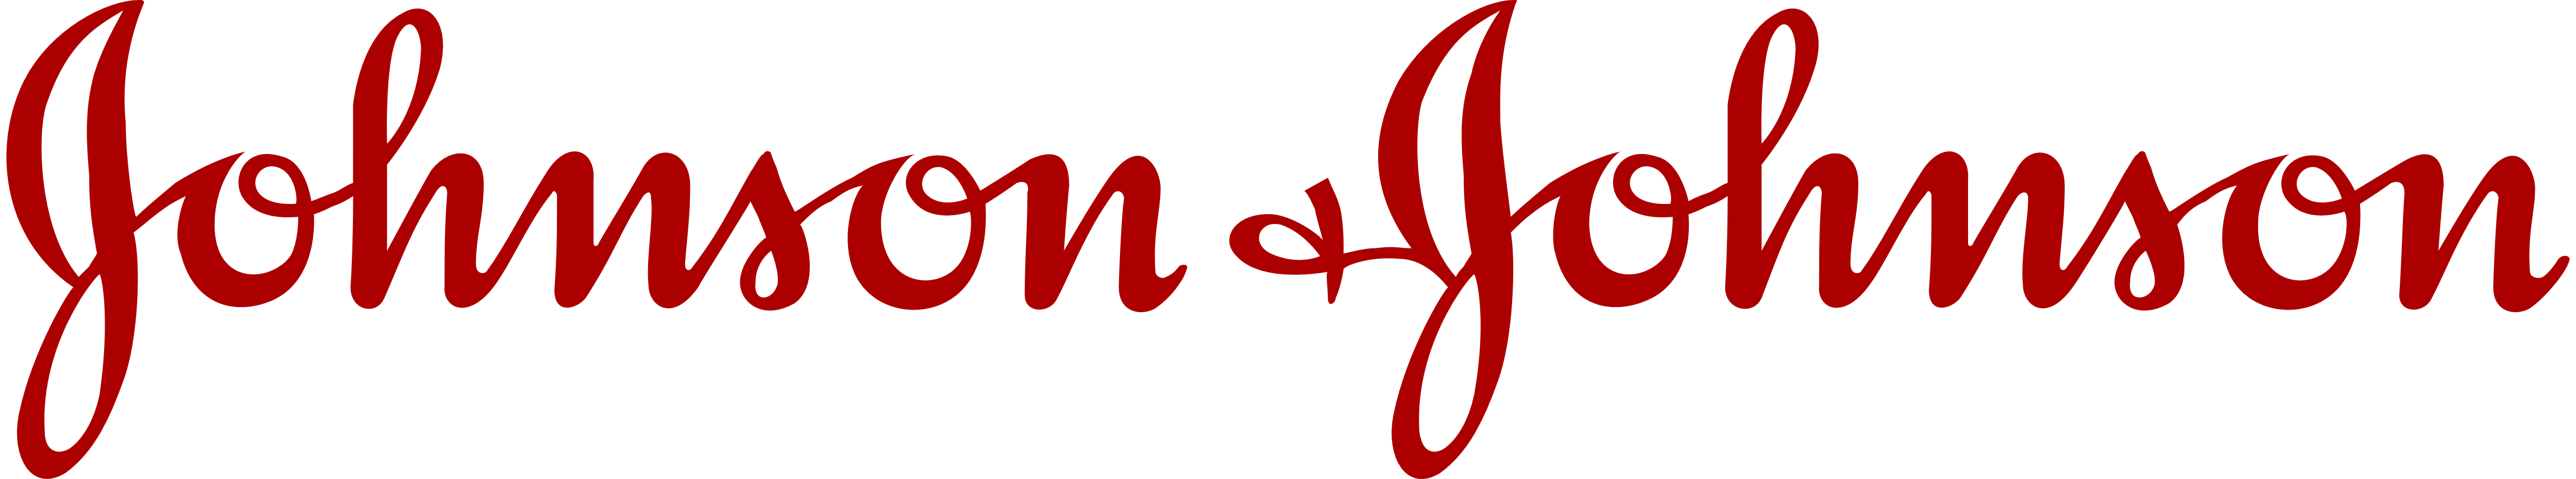 Johnson_and_Johnson_logo